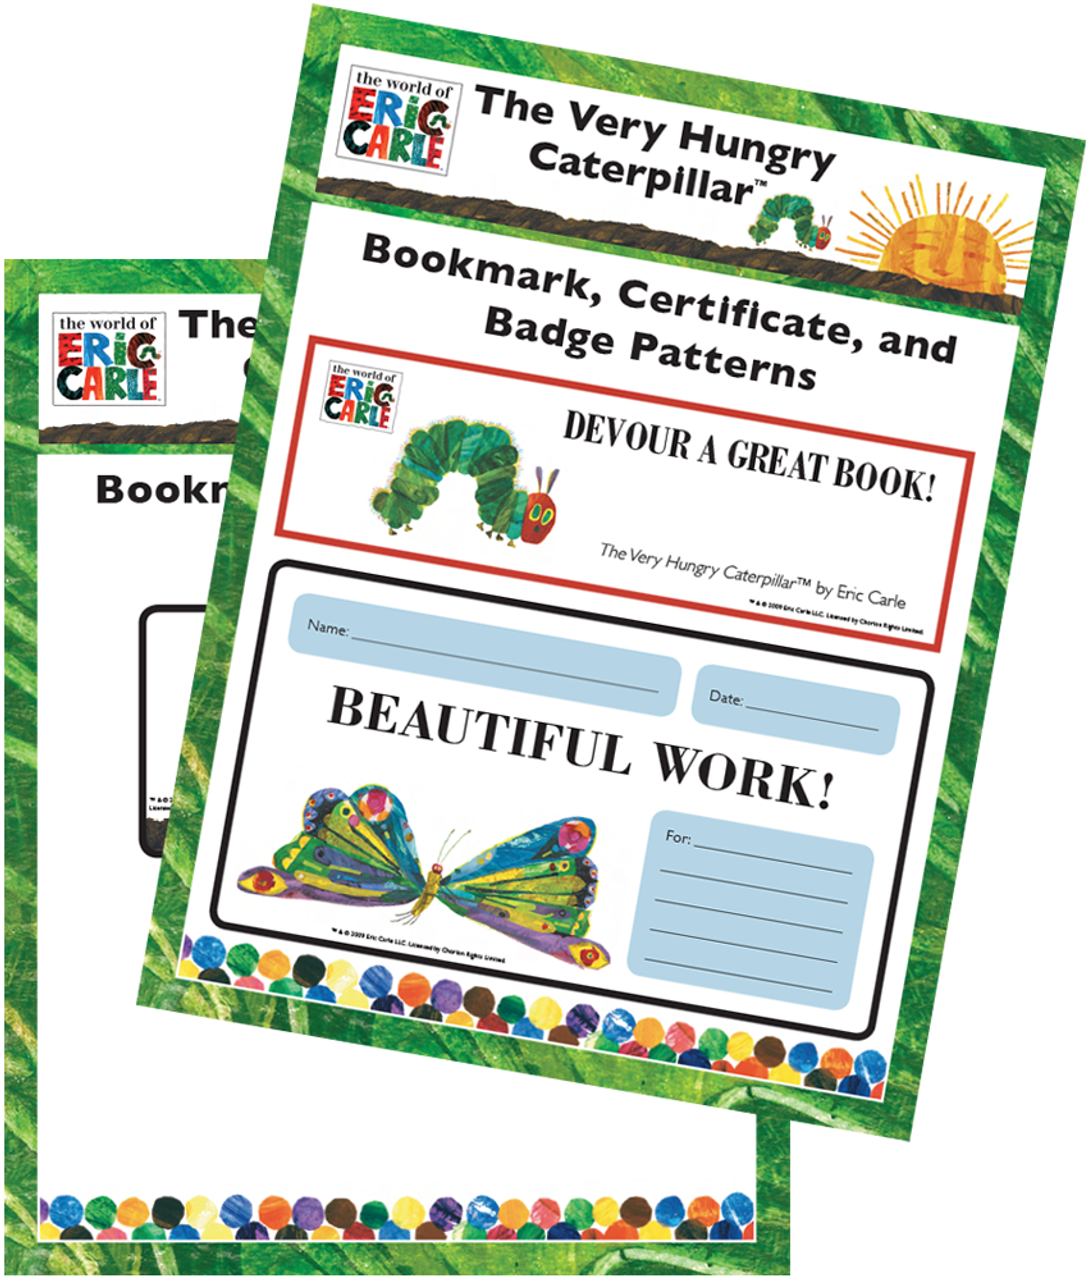 graphic about Free Printable Patterns referred to as Bookmark, Certification, and Badge Routine Free of charge Printable